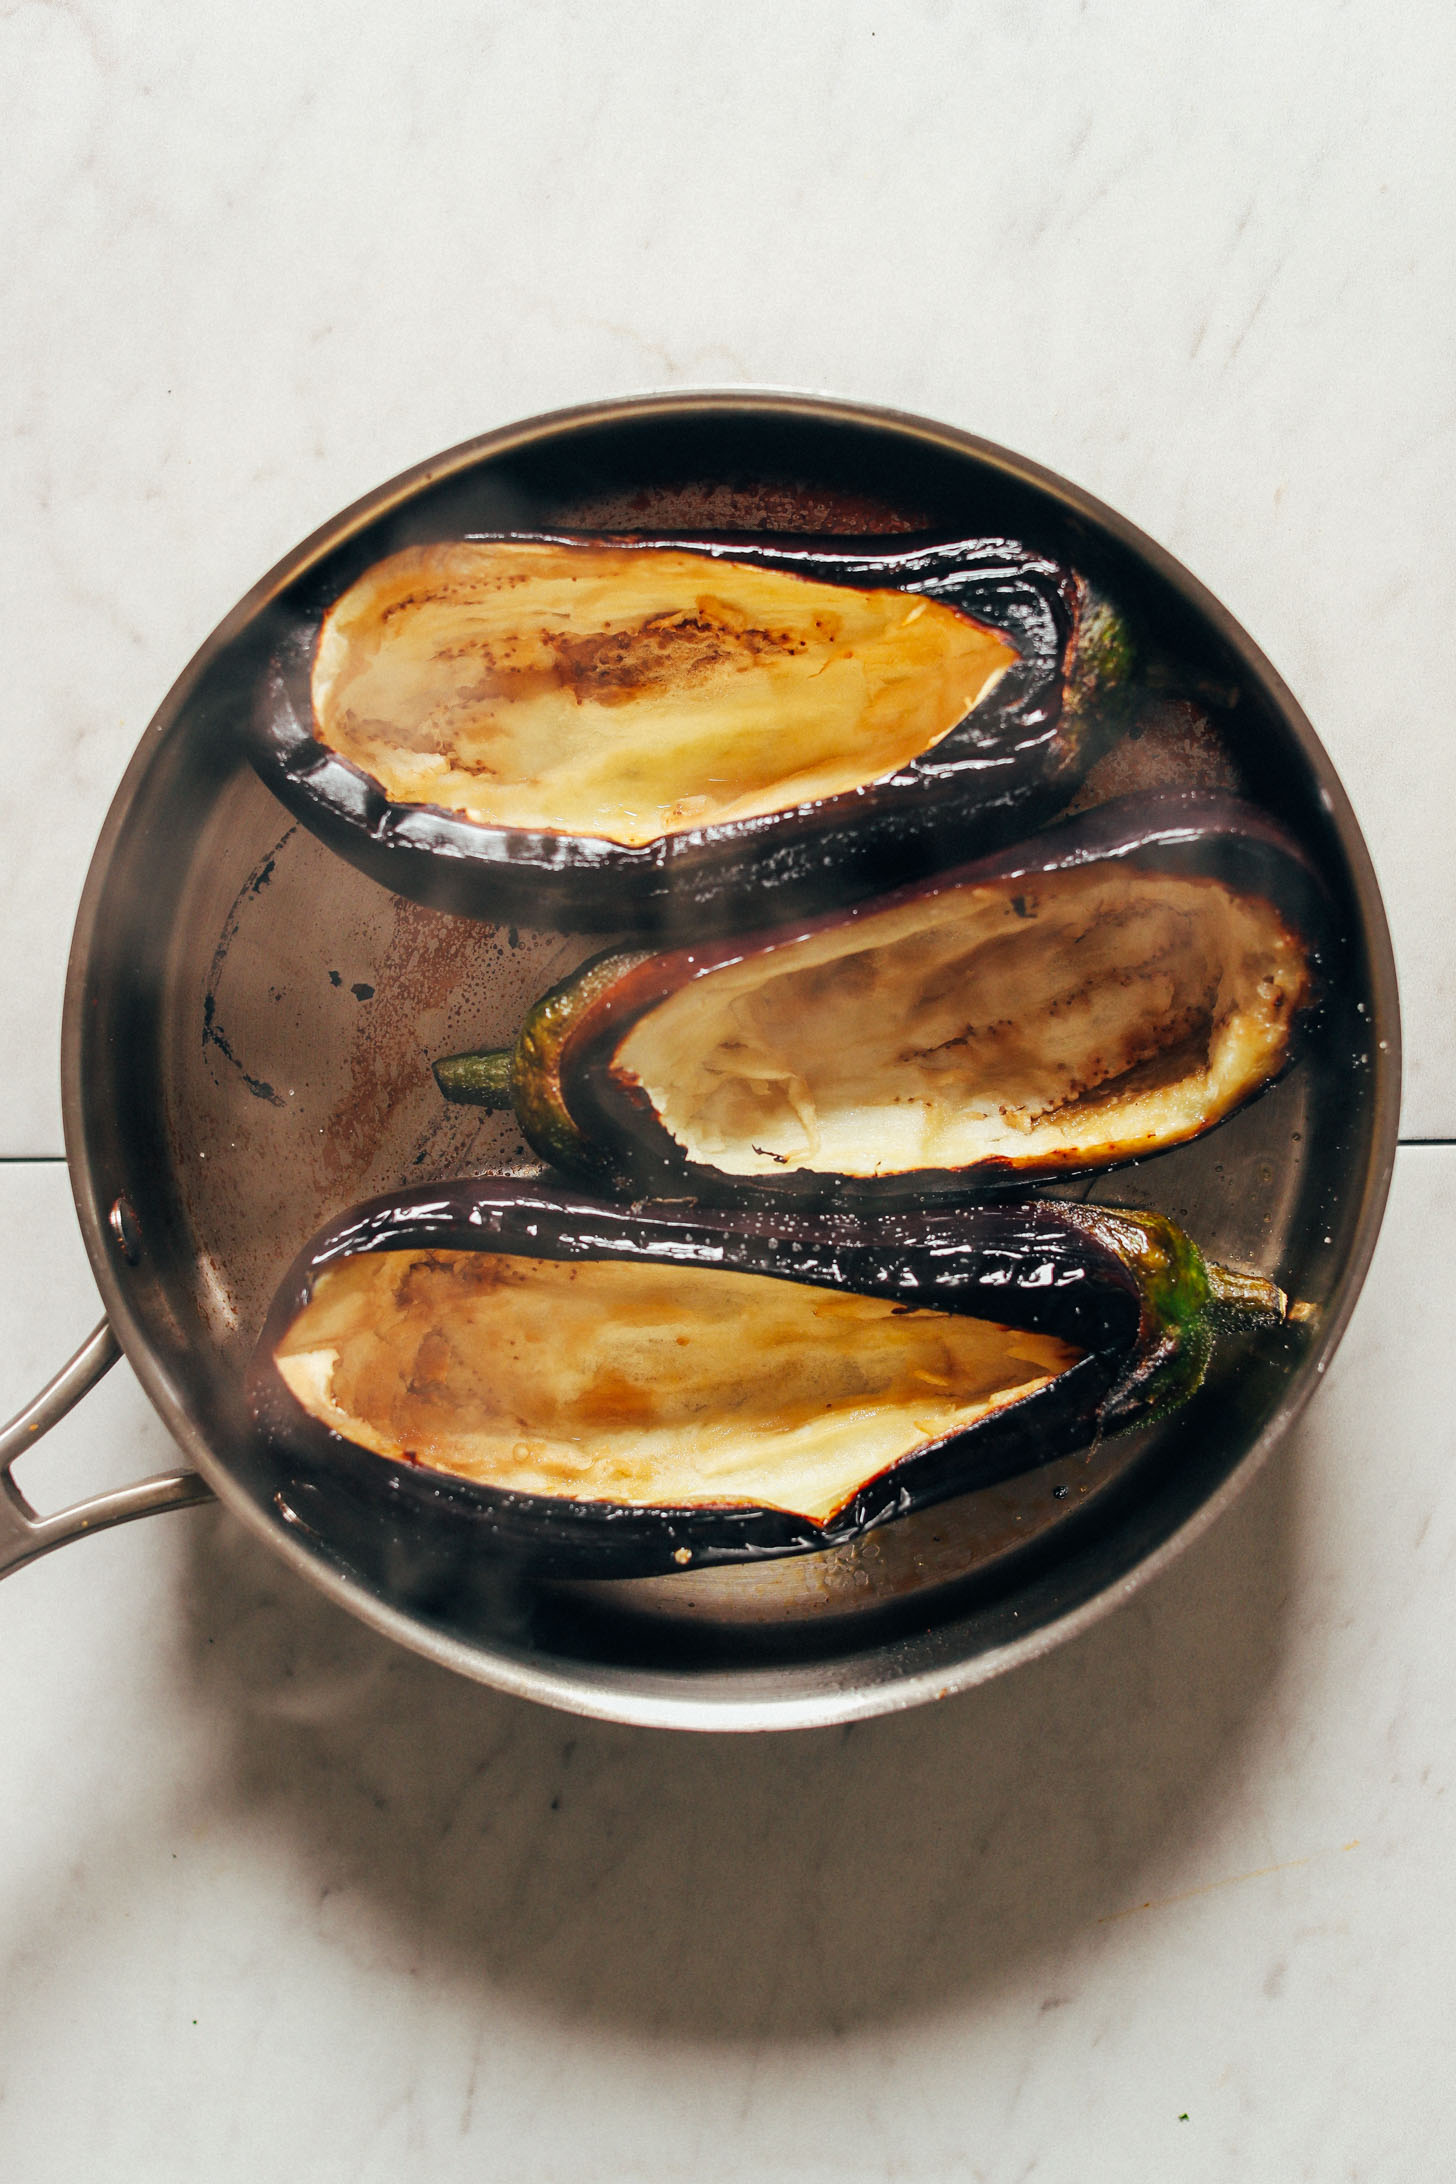 Nicely charred eggplants in a large saute pan